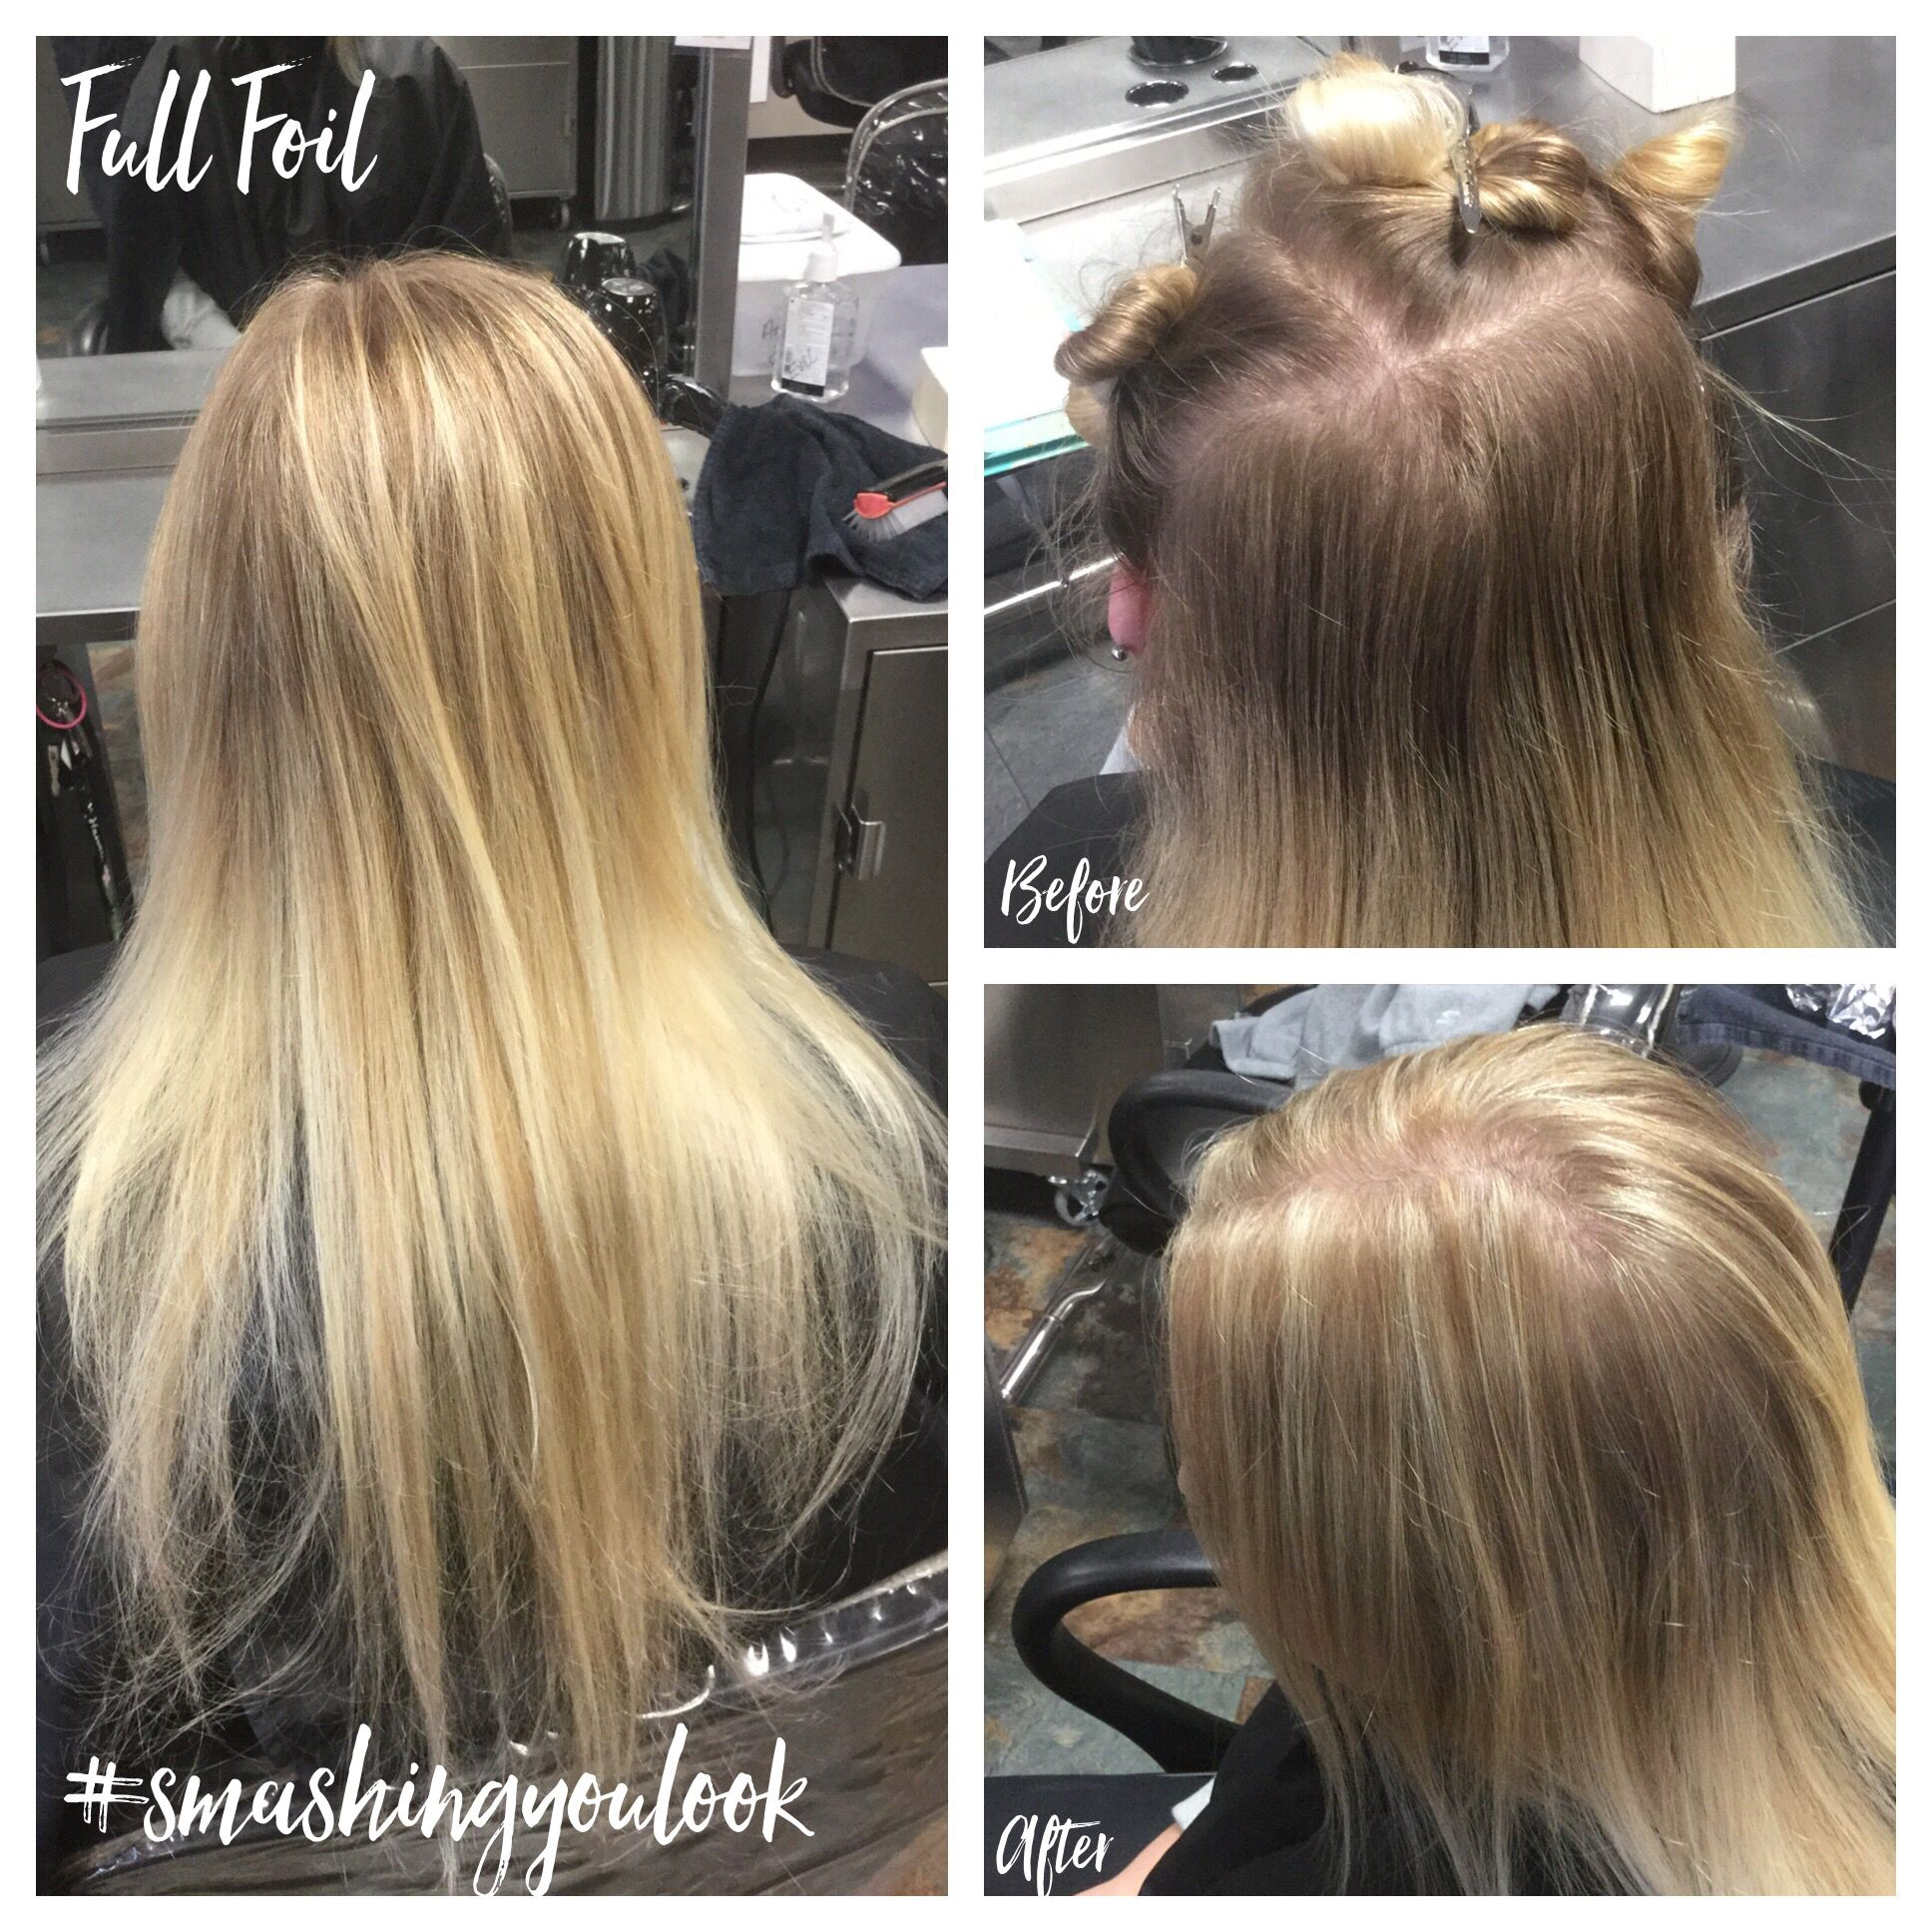 Full Foil Using All Diagonal Partings Wella Blondor 2 1 Using 8 38 For Lowlights 7 7 16 Long Hair Styles Hair Styles Hair Color